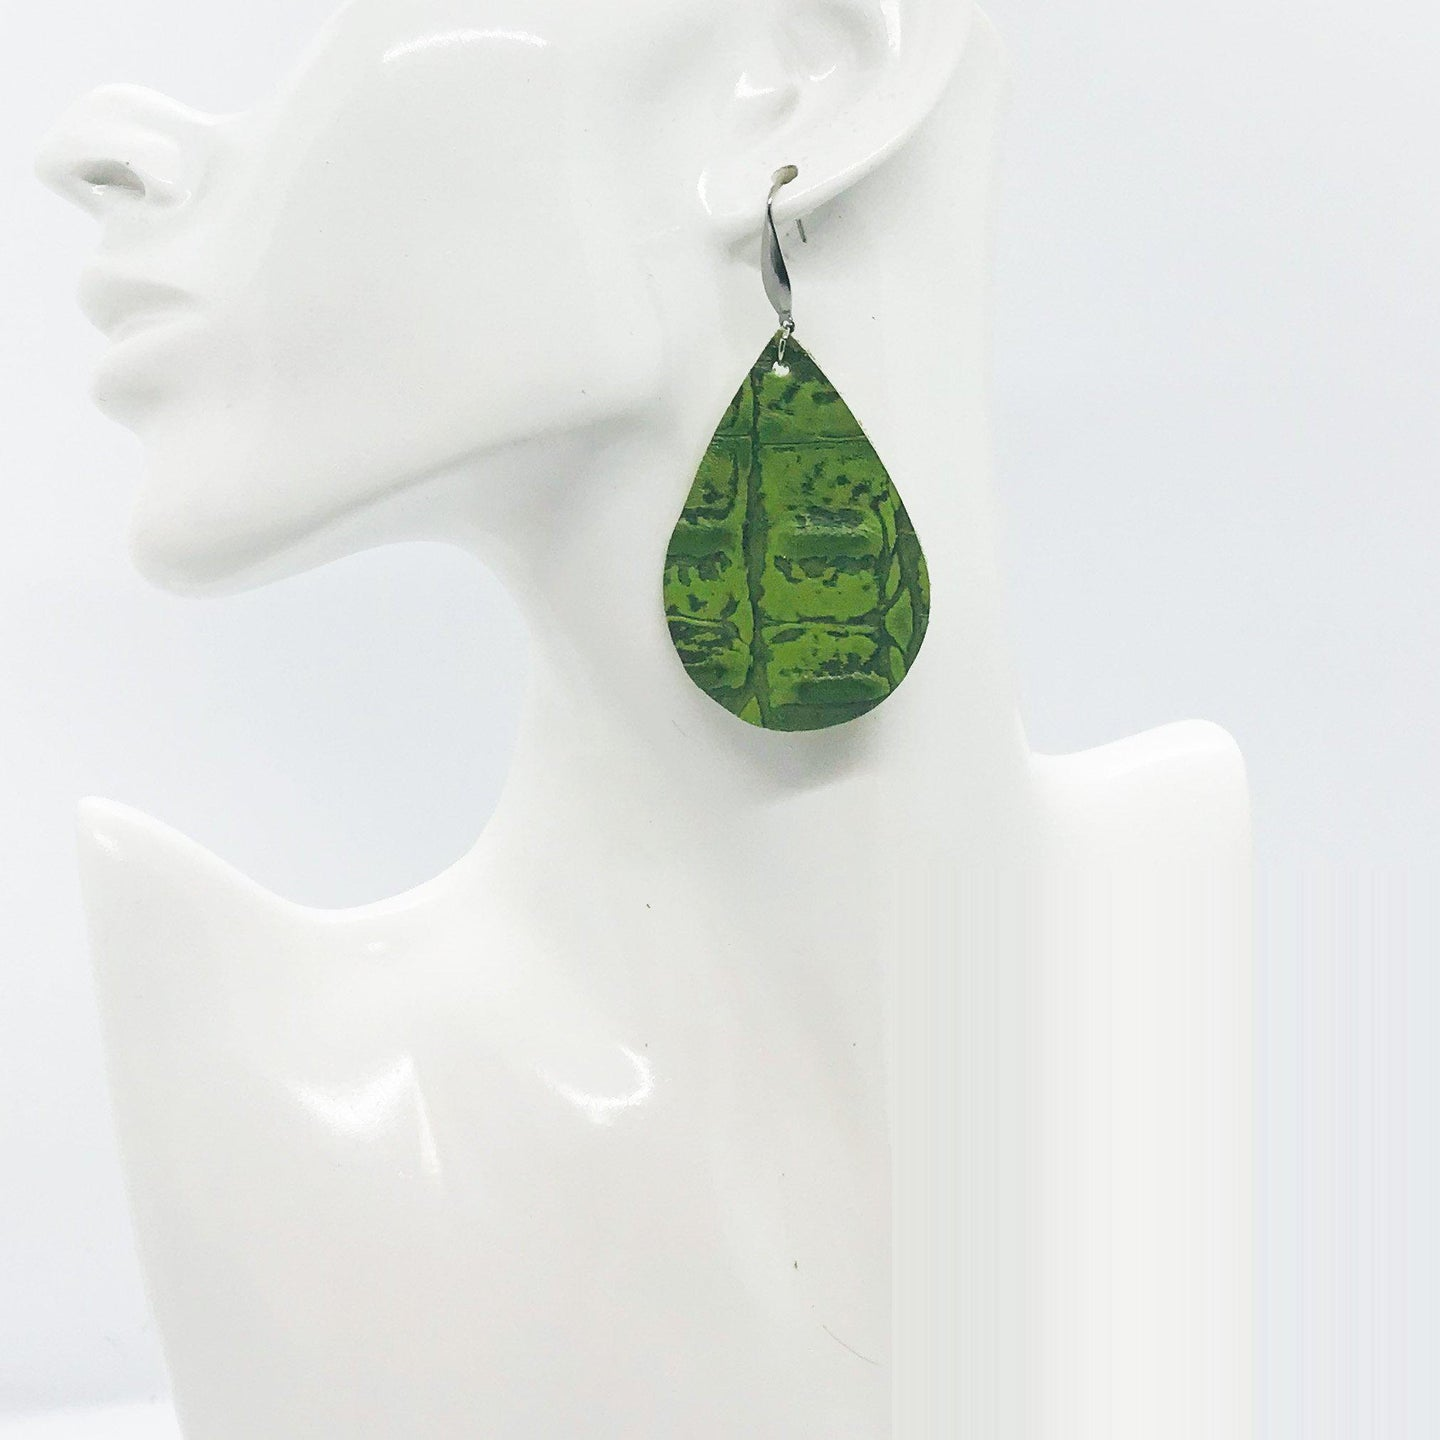 Green Alligator Leather Earrings - E19-1564